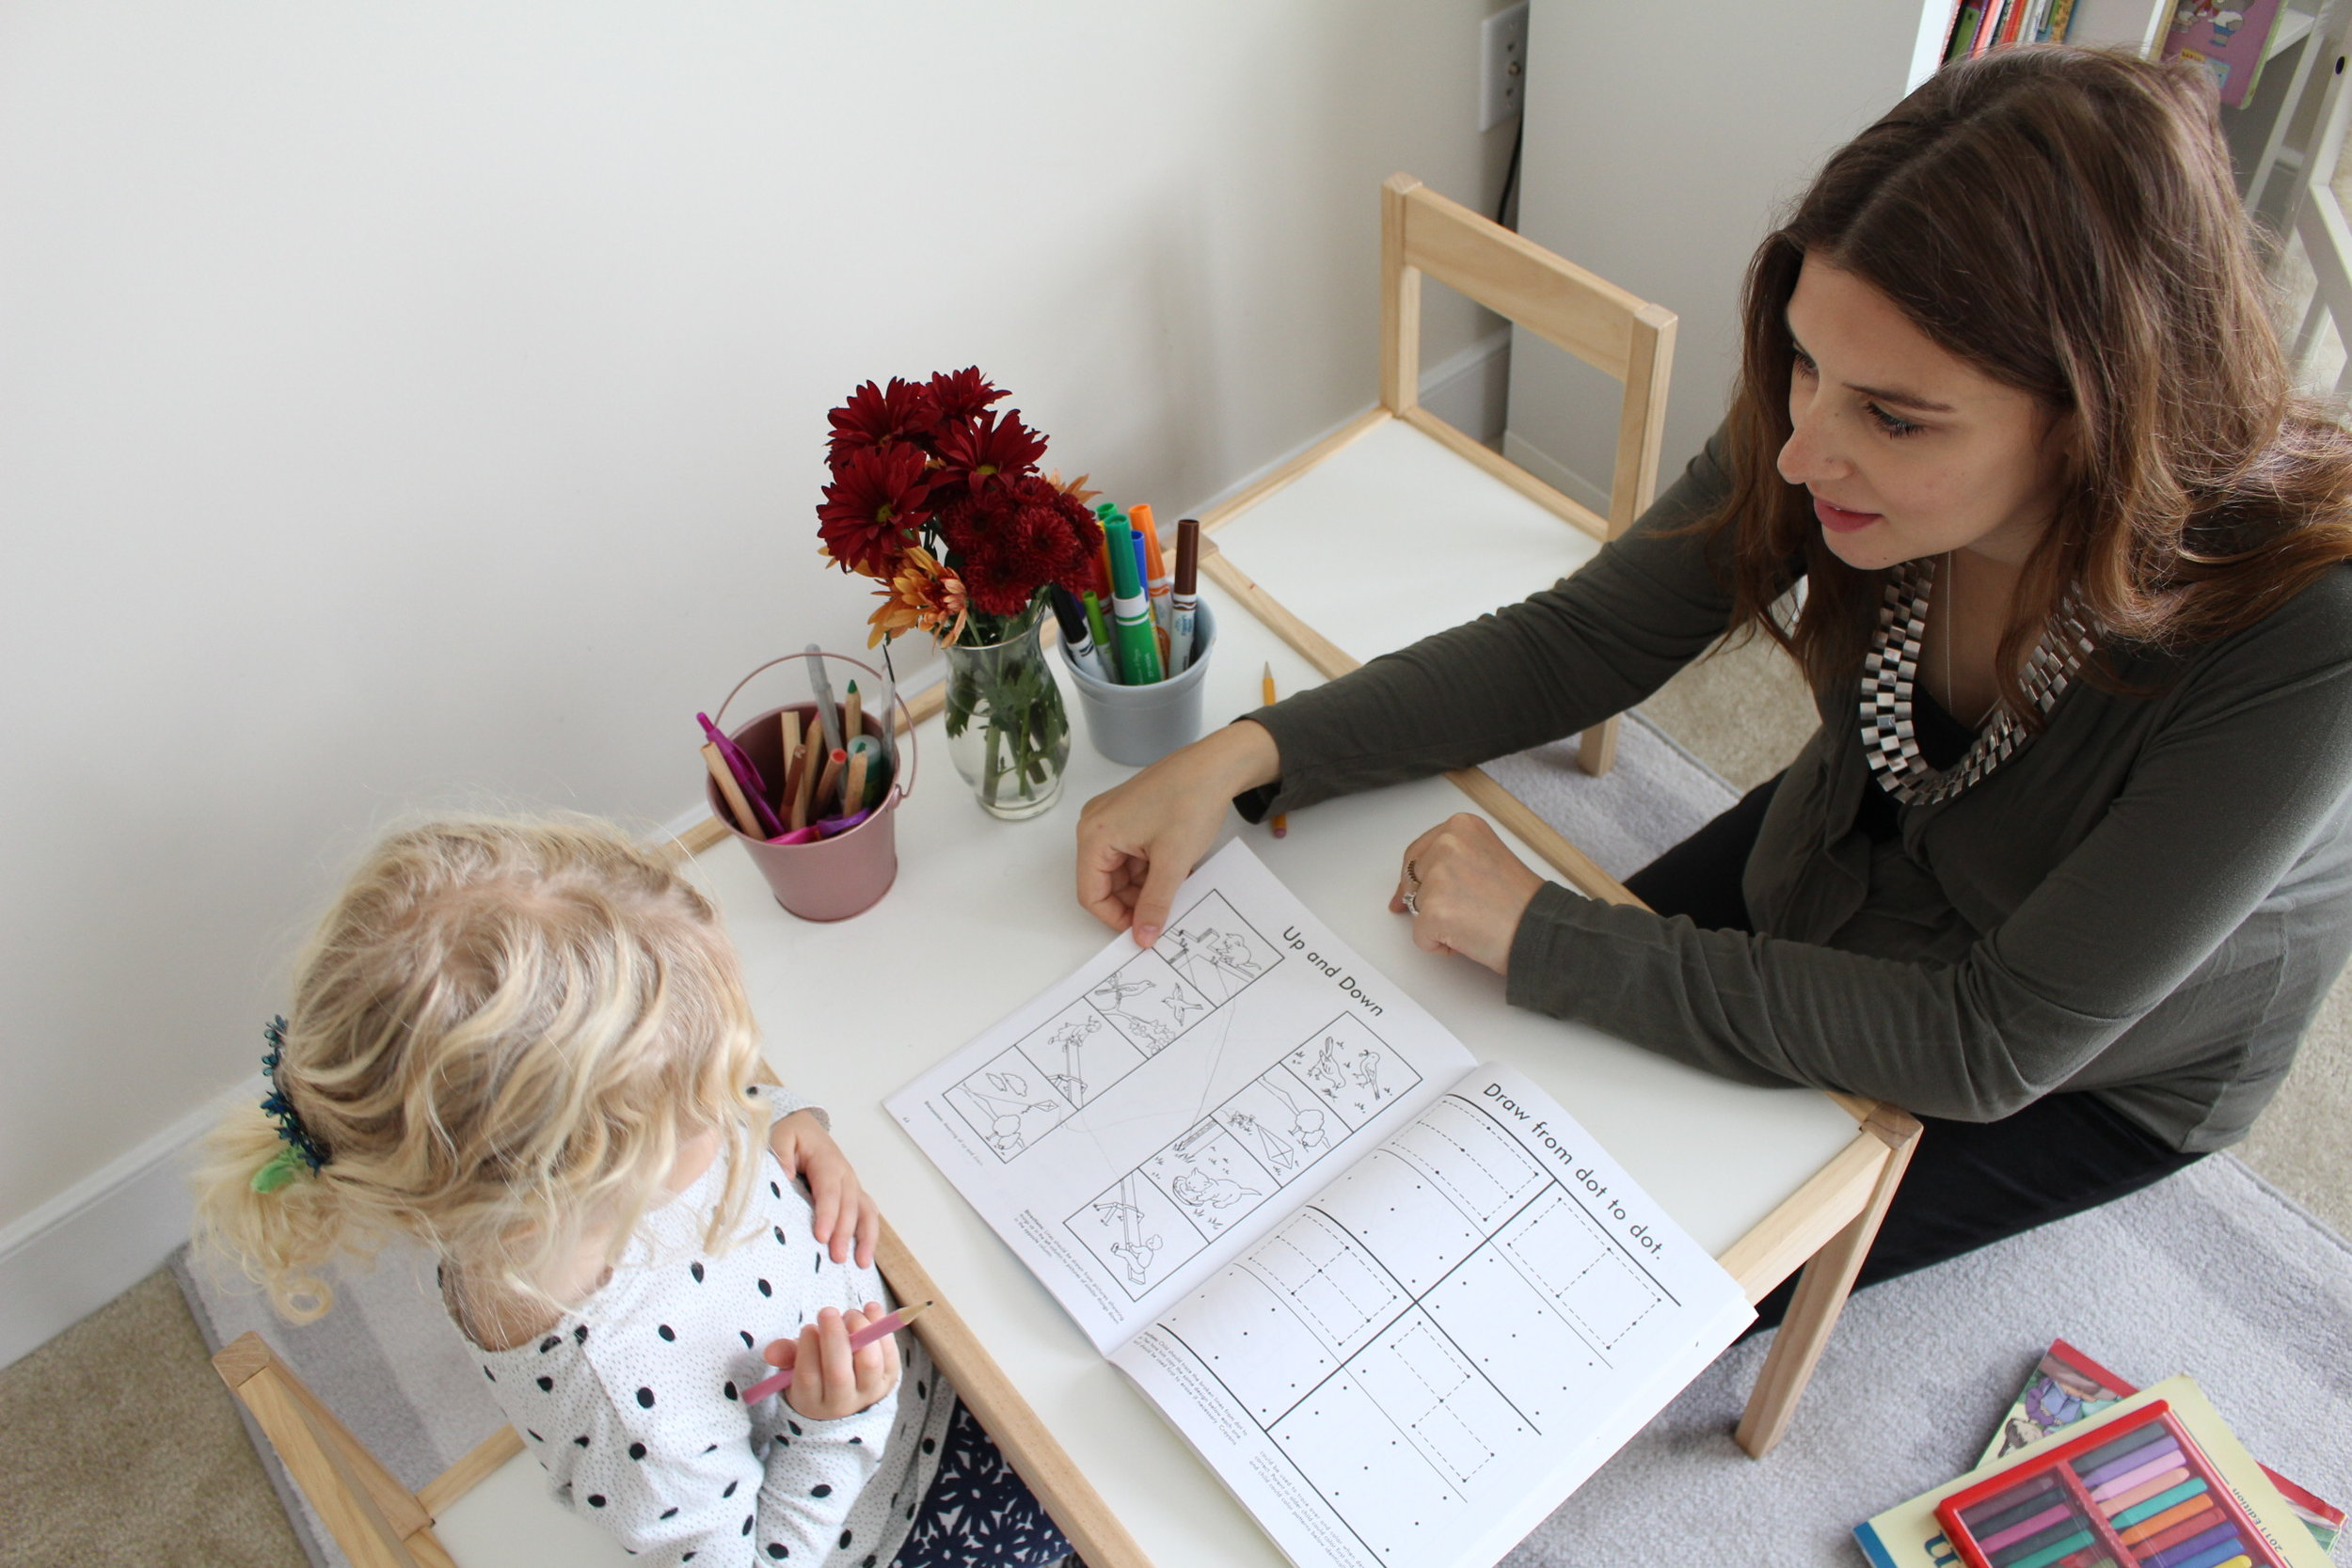 WHY HOMESCHOOLING PRE-K IS THE BEST / HOMESCHOOLING / PRESCHOOL / MOTHERHOOD / VOCATION / EDUCATION / LEARNING / NICOLEMCARUSO.COM